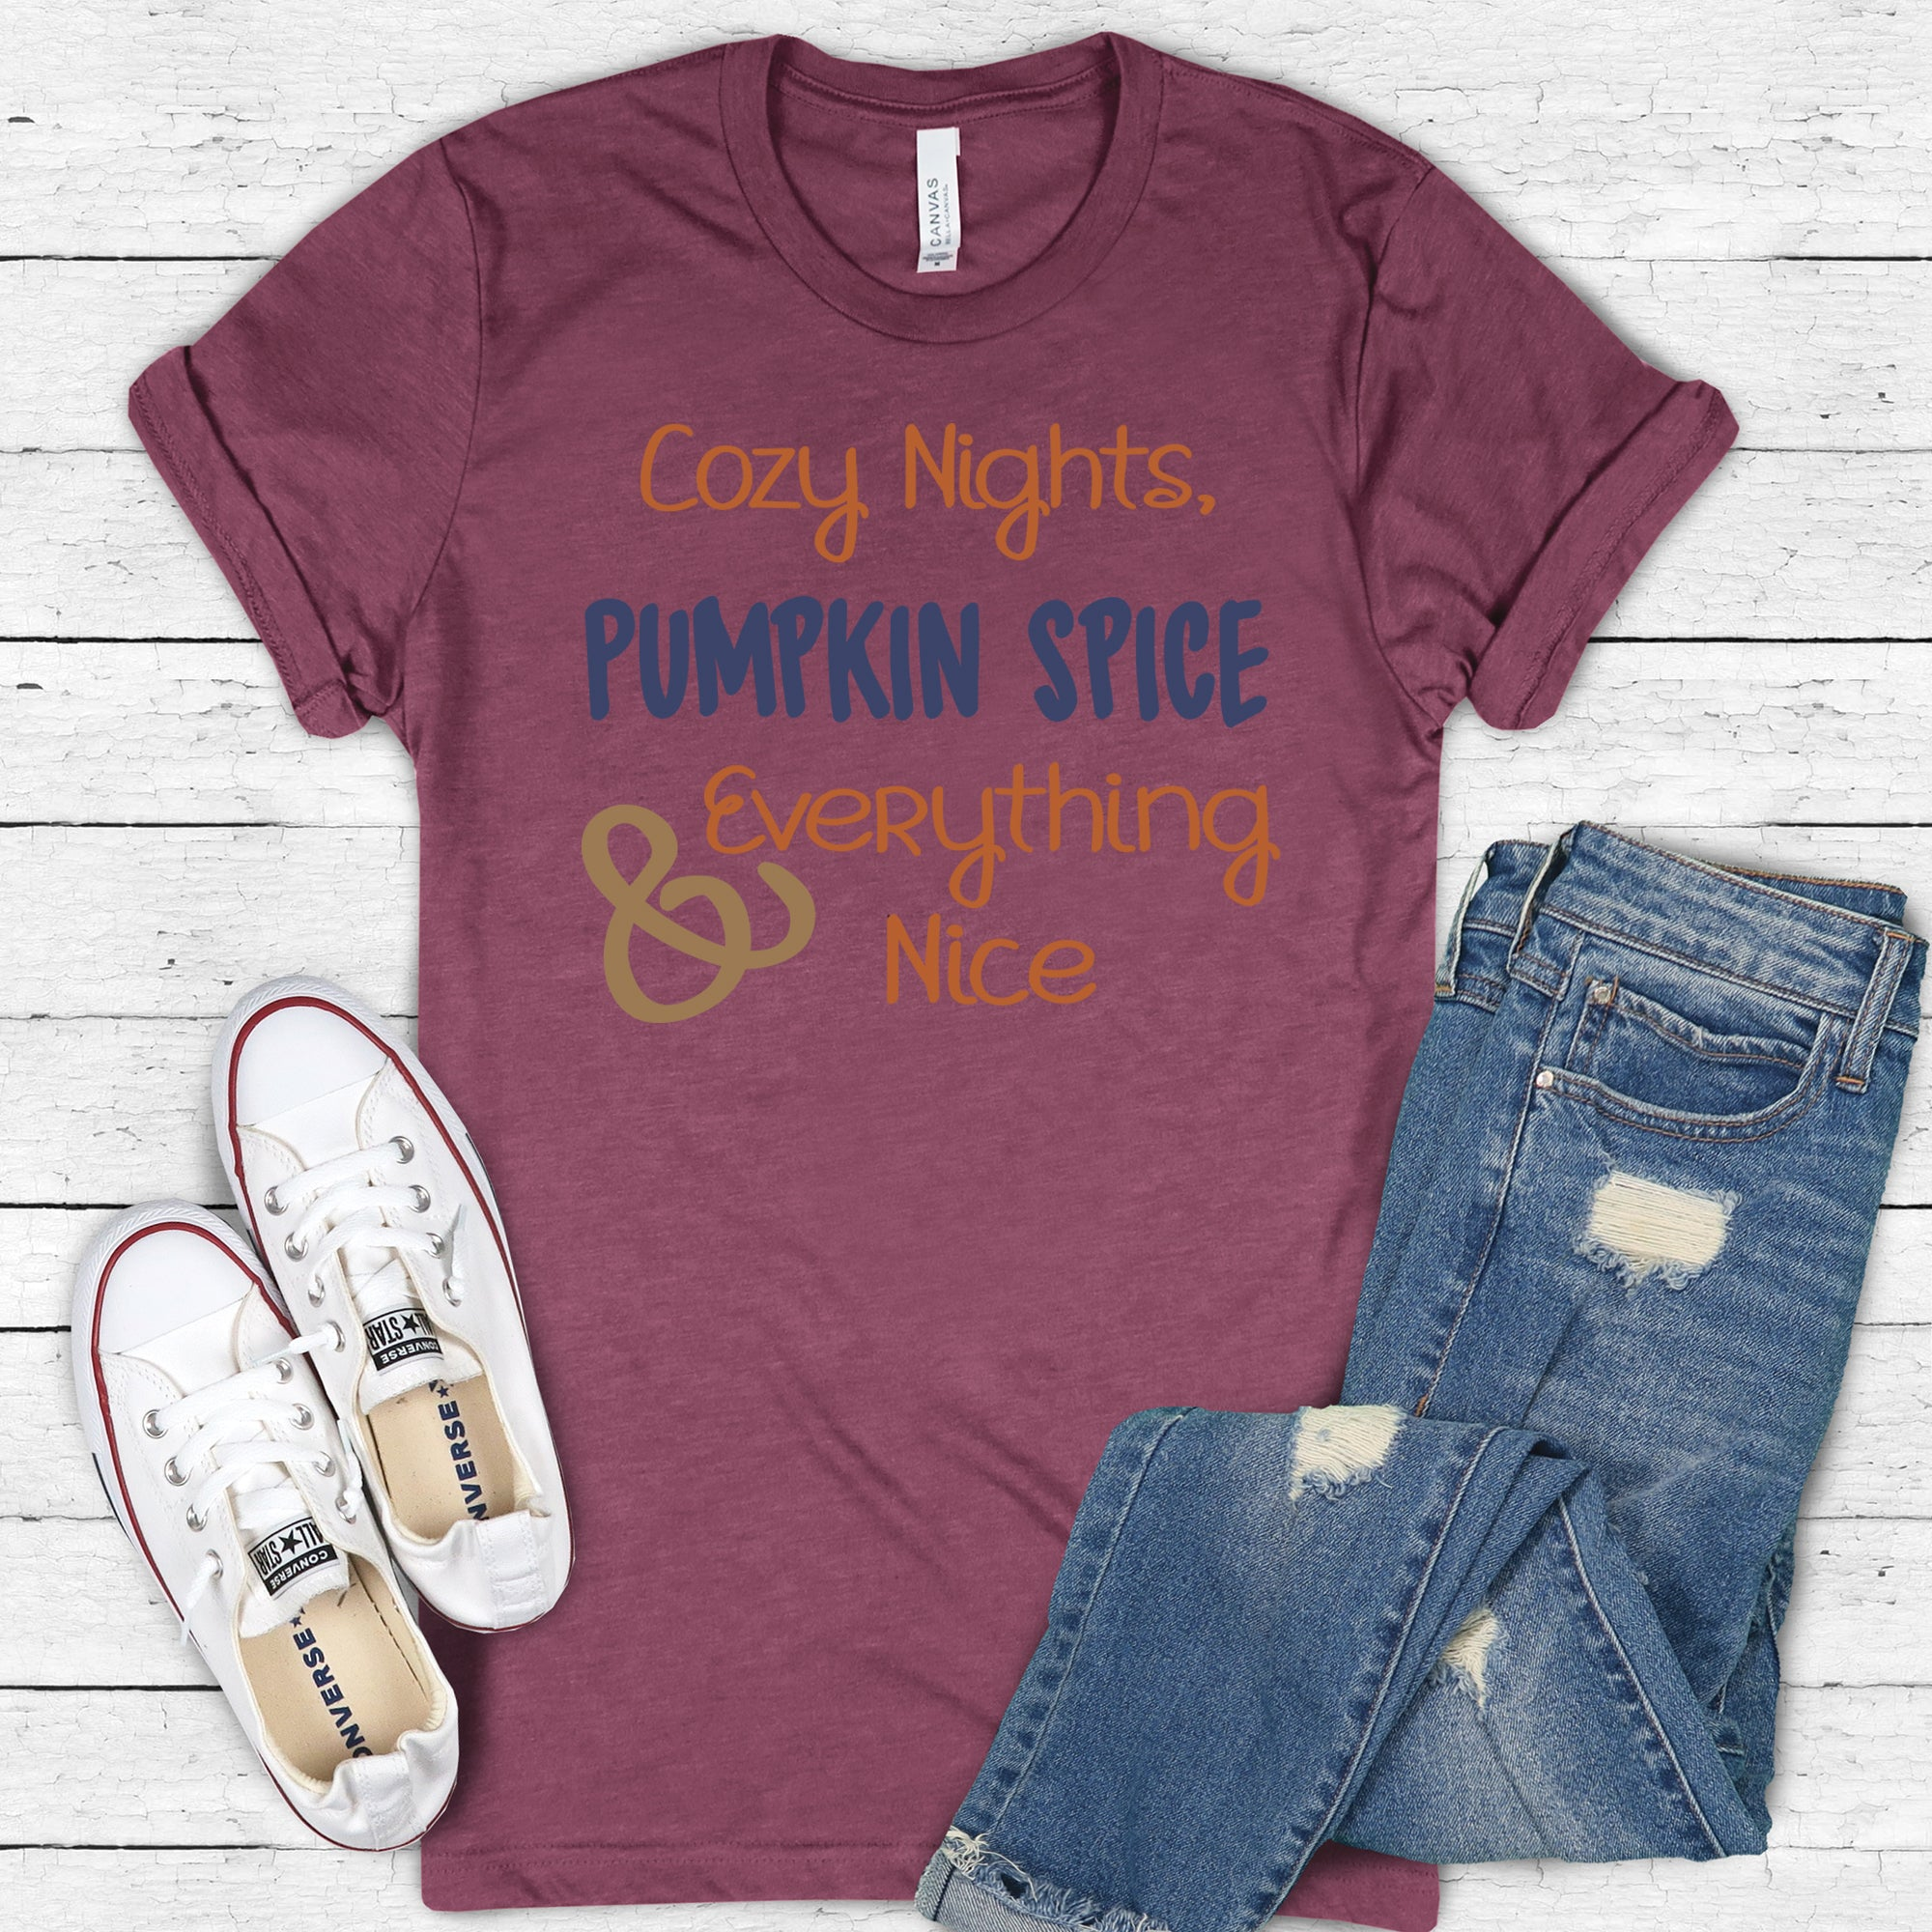 Cozy Nights, Pumpkin Spice and Everything Nice